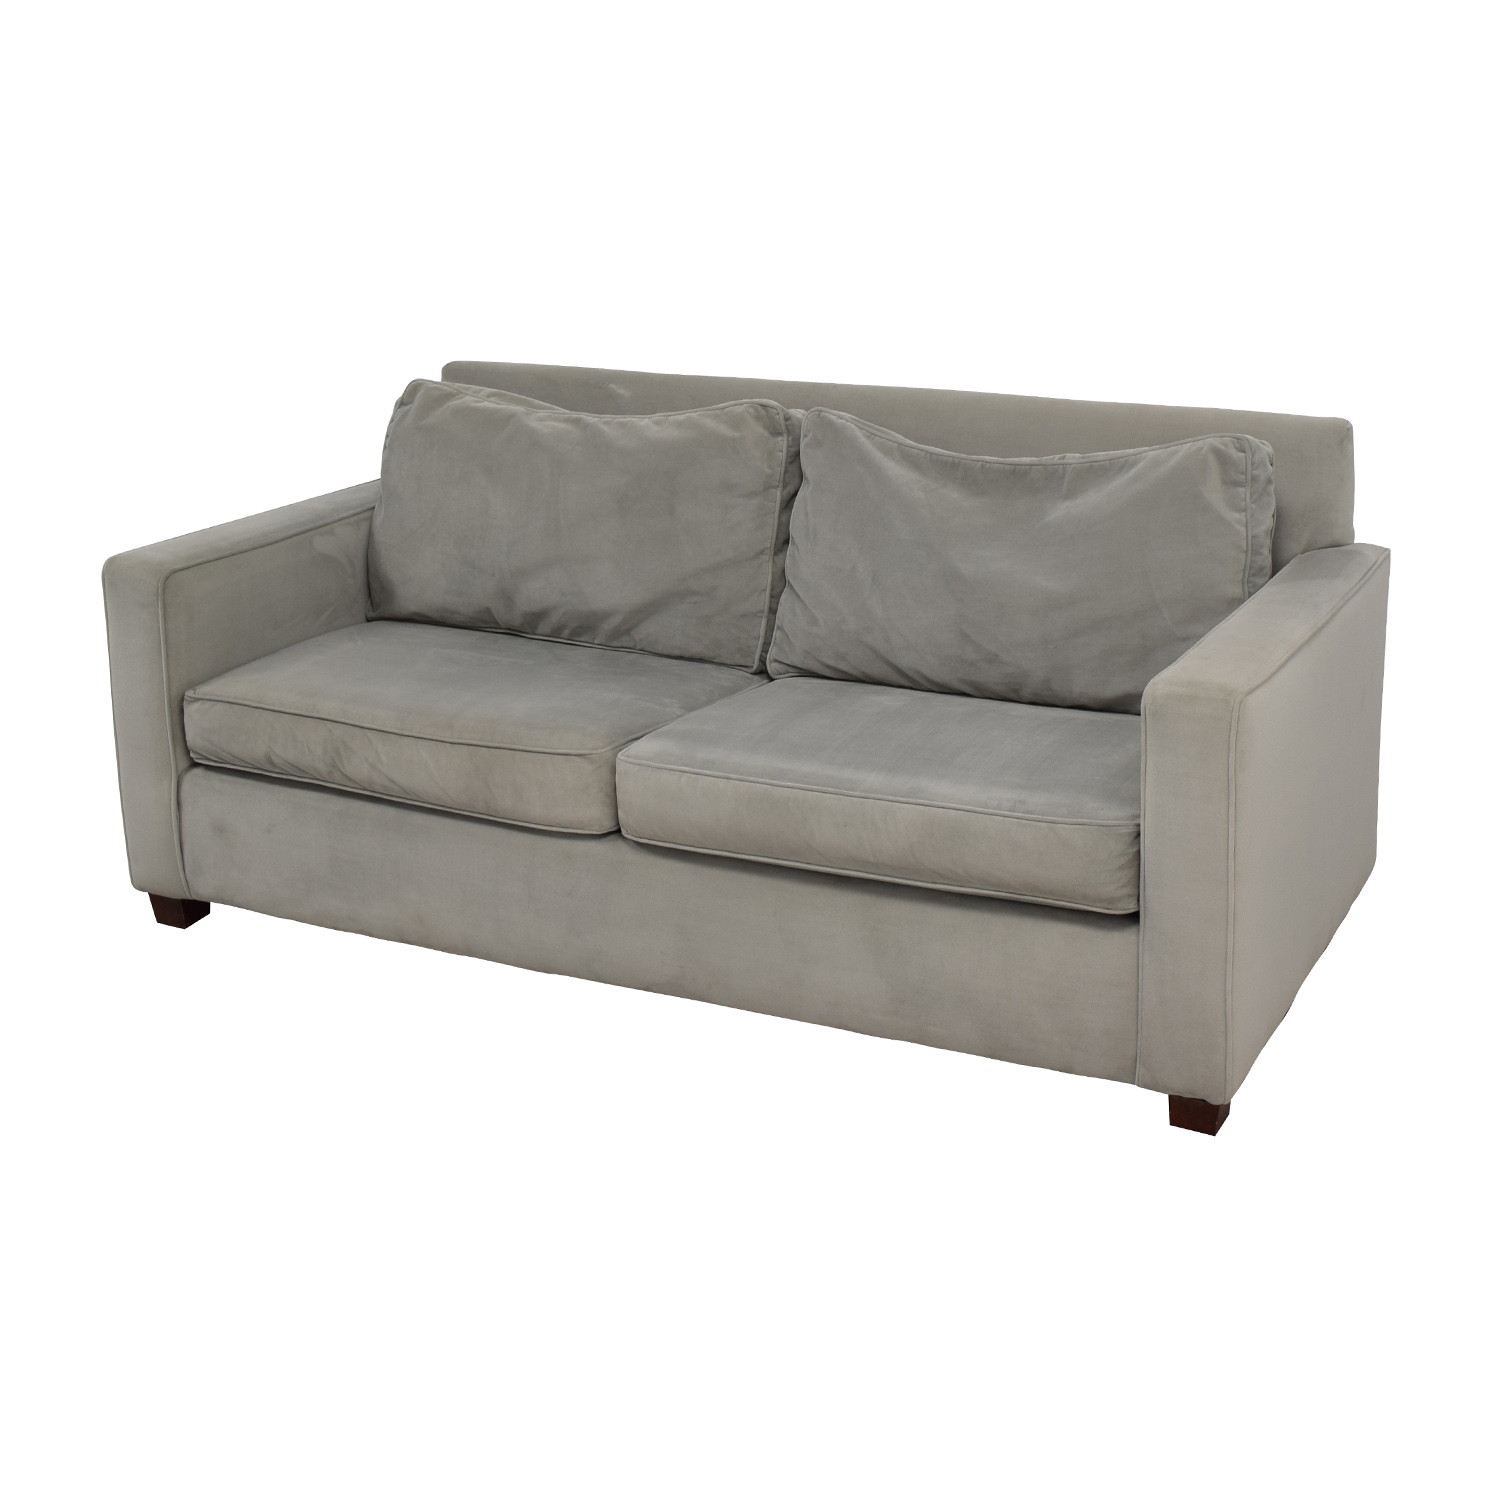 73 Off West Elm West Elm Henry Two Seat Sofa Sofas